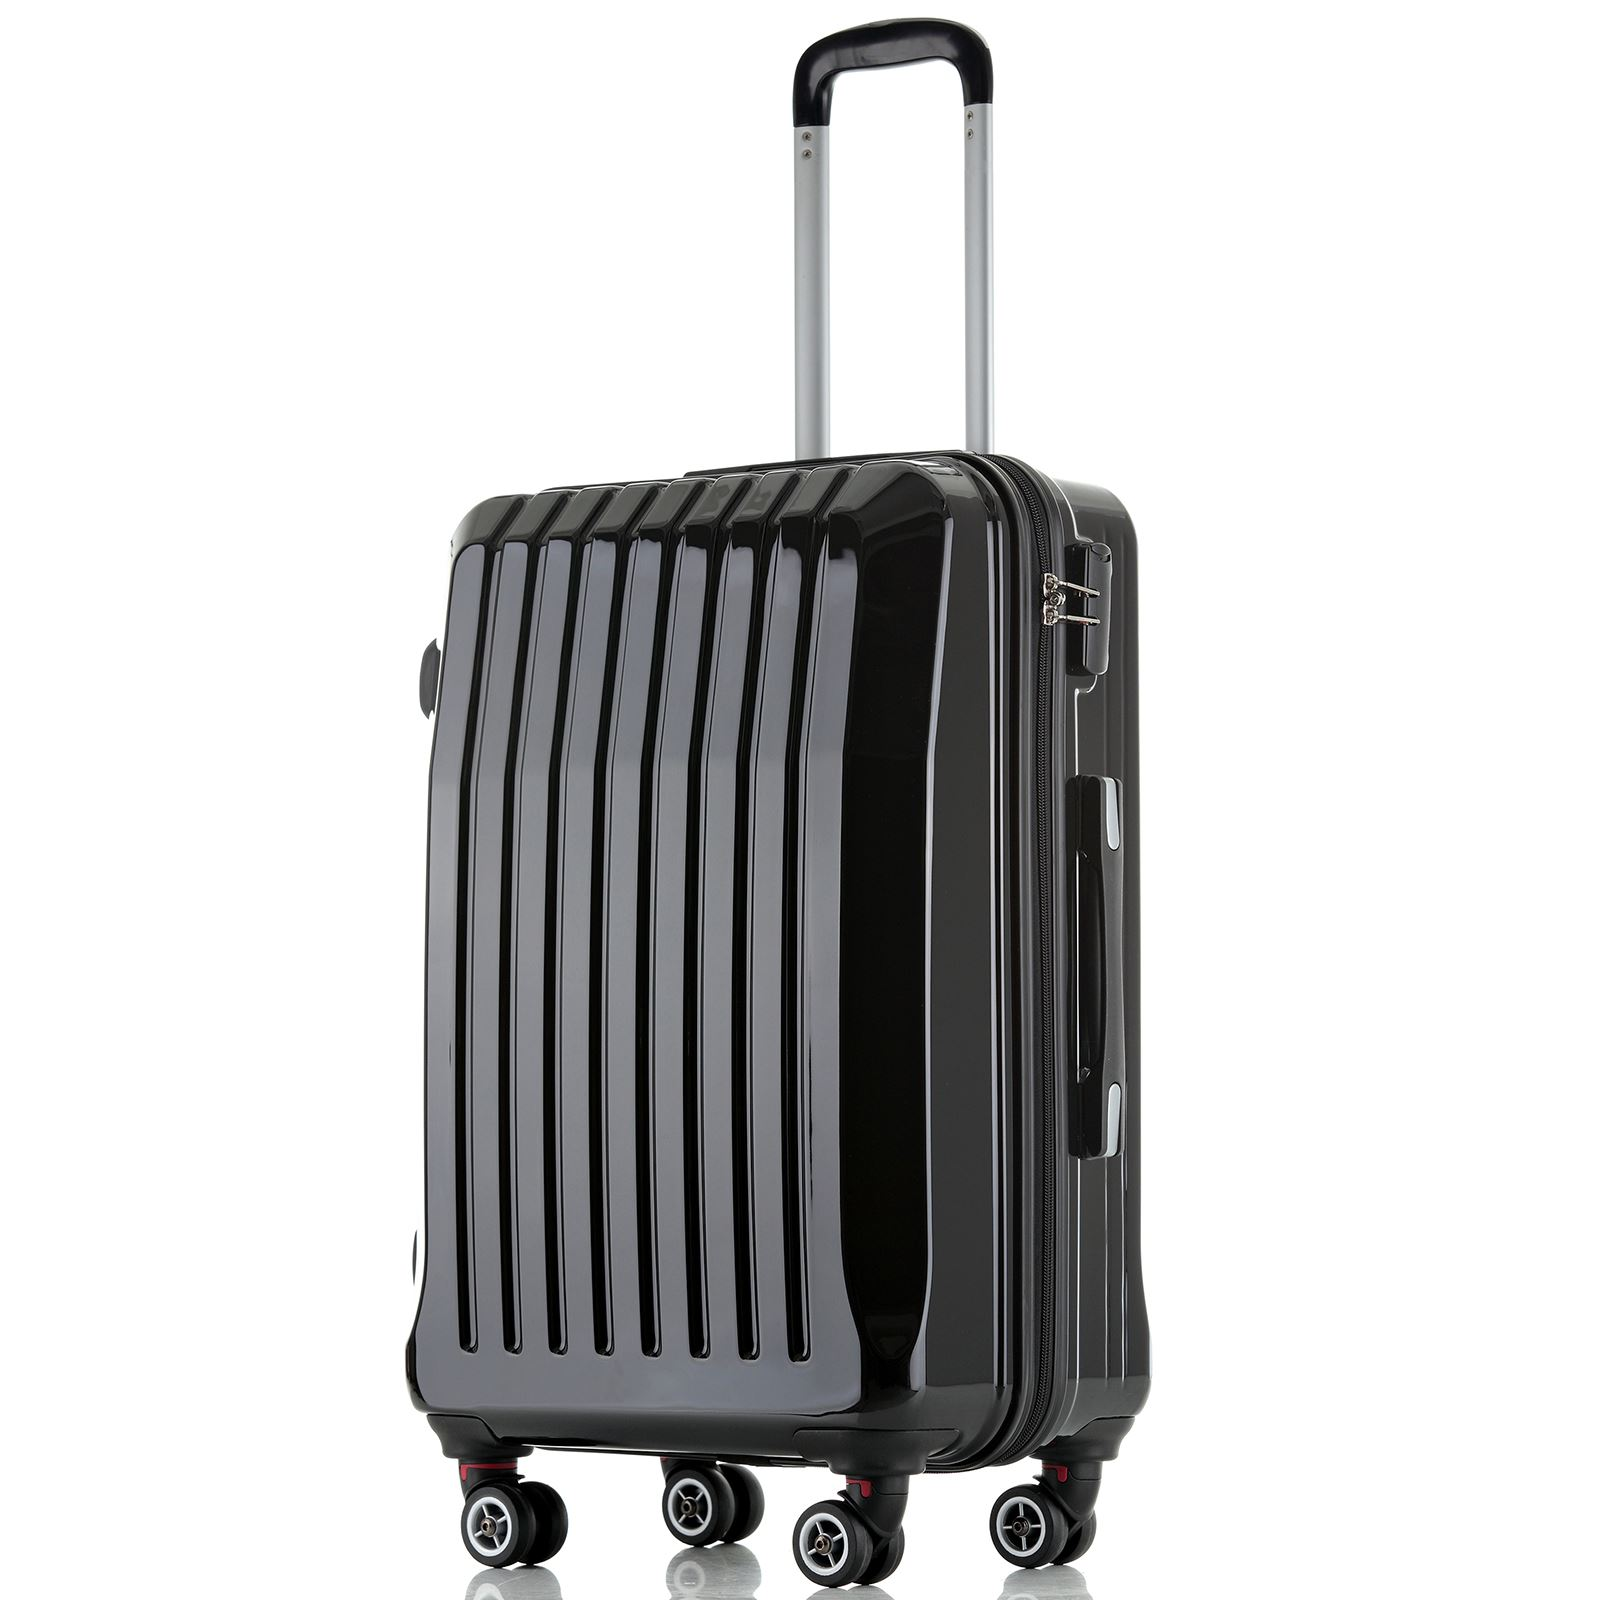 Hard Shell ABS Trolley Case 4 Spinner Wheels Suitcase ...